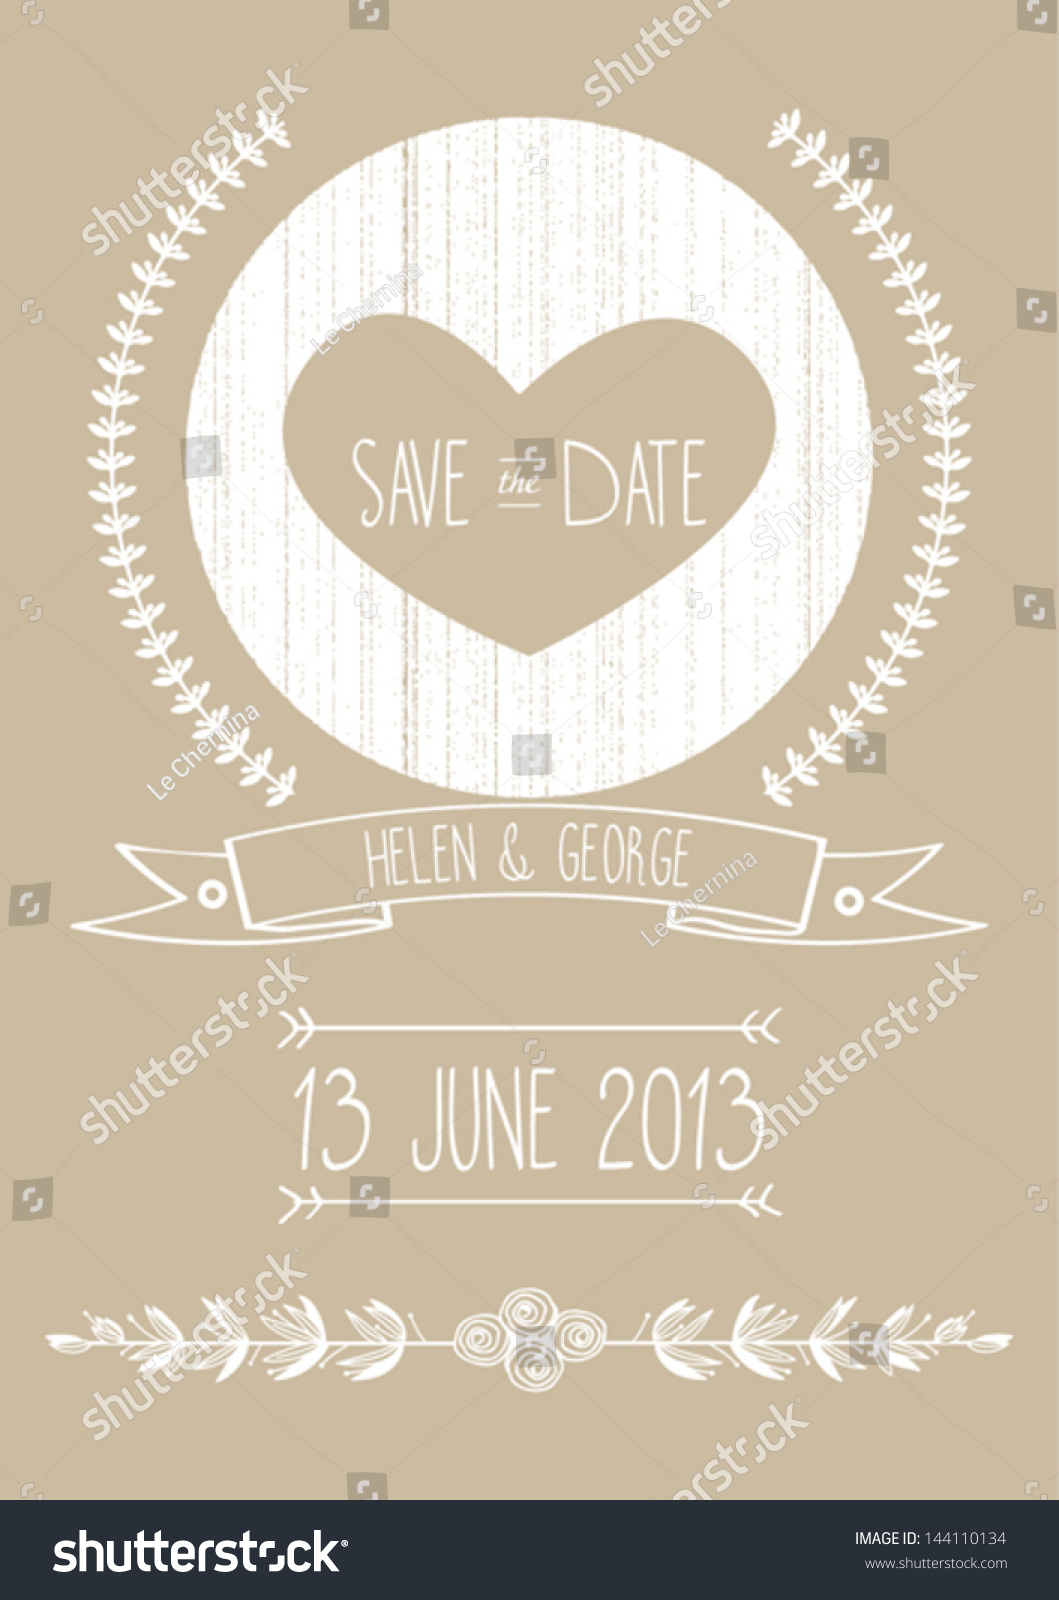 royalty free save the date wedding invitation 144110134 stock photo. Black Bedroom Furniture Sets. Home Design Ideas